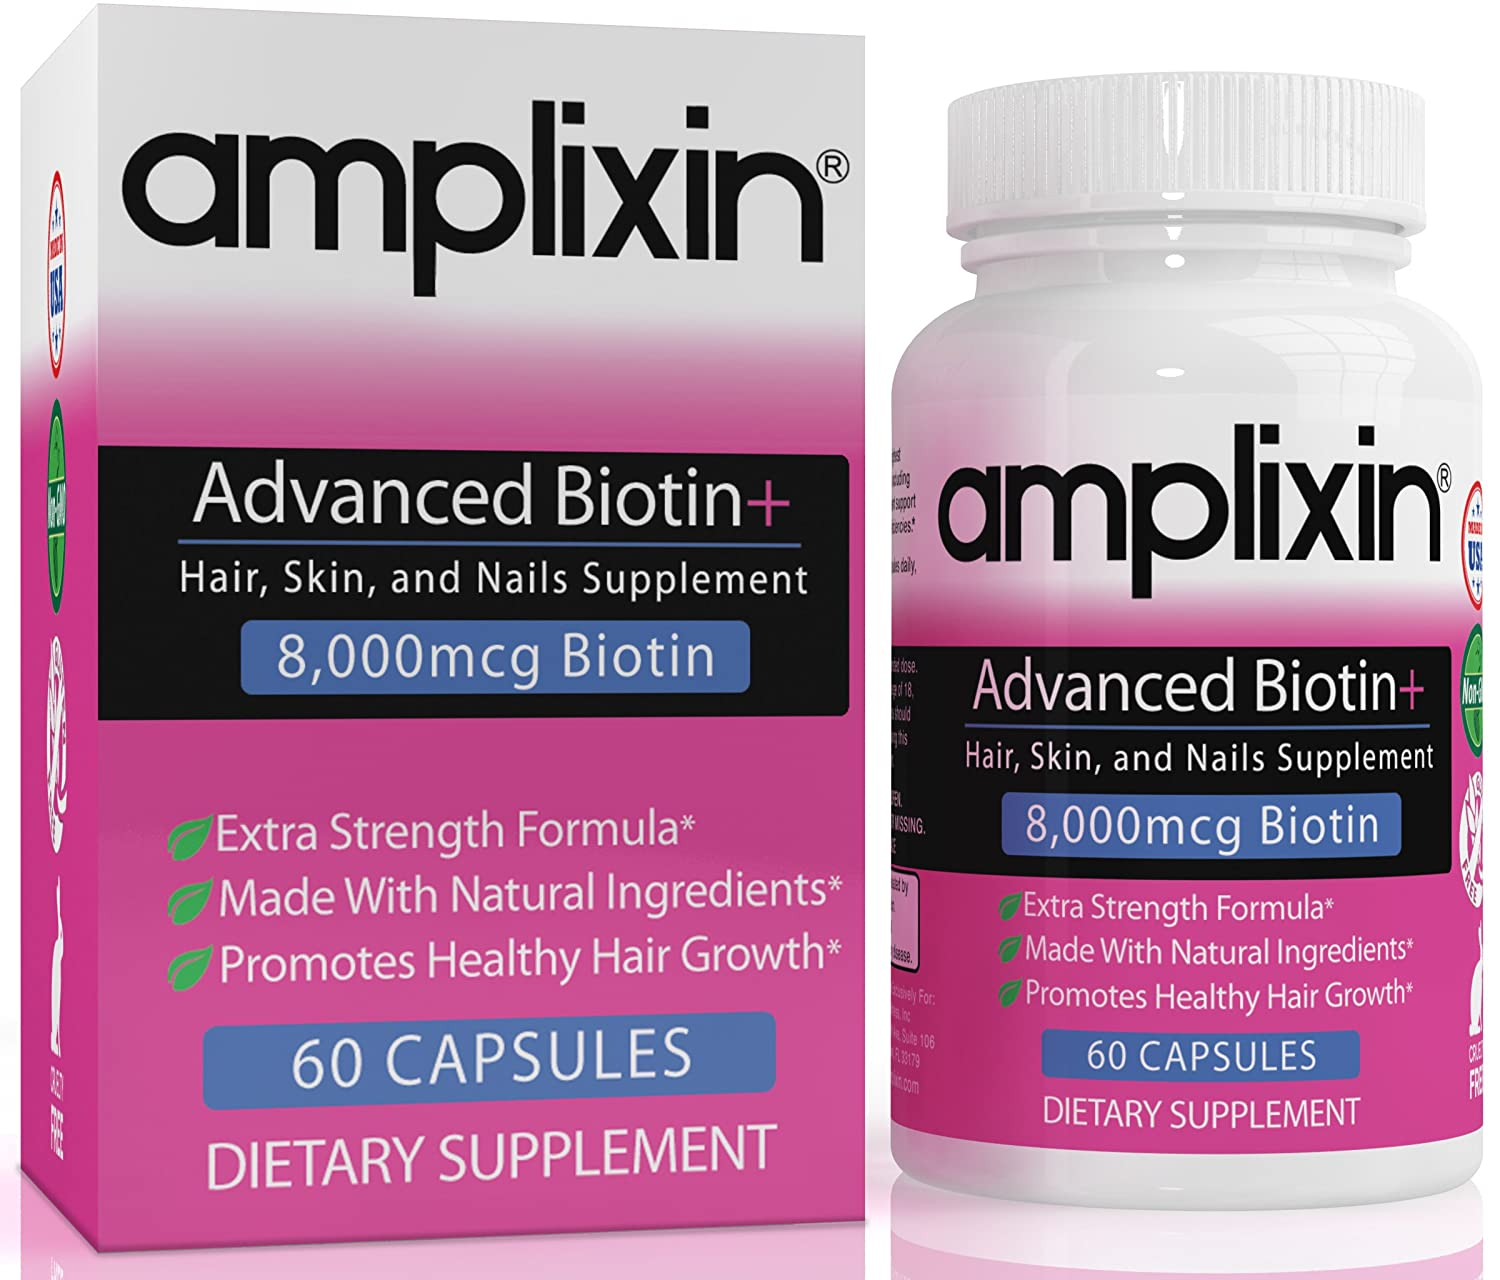 Amazoncom  Amplixin Advanced Biotin Plus Supplement For Hair - How much biotin to take for hair growth